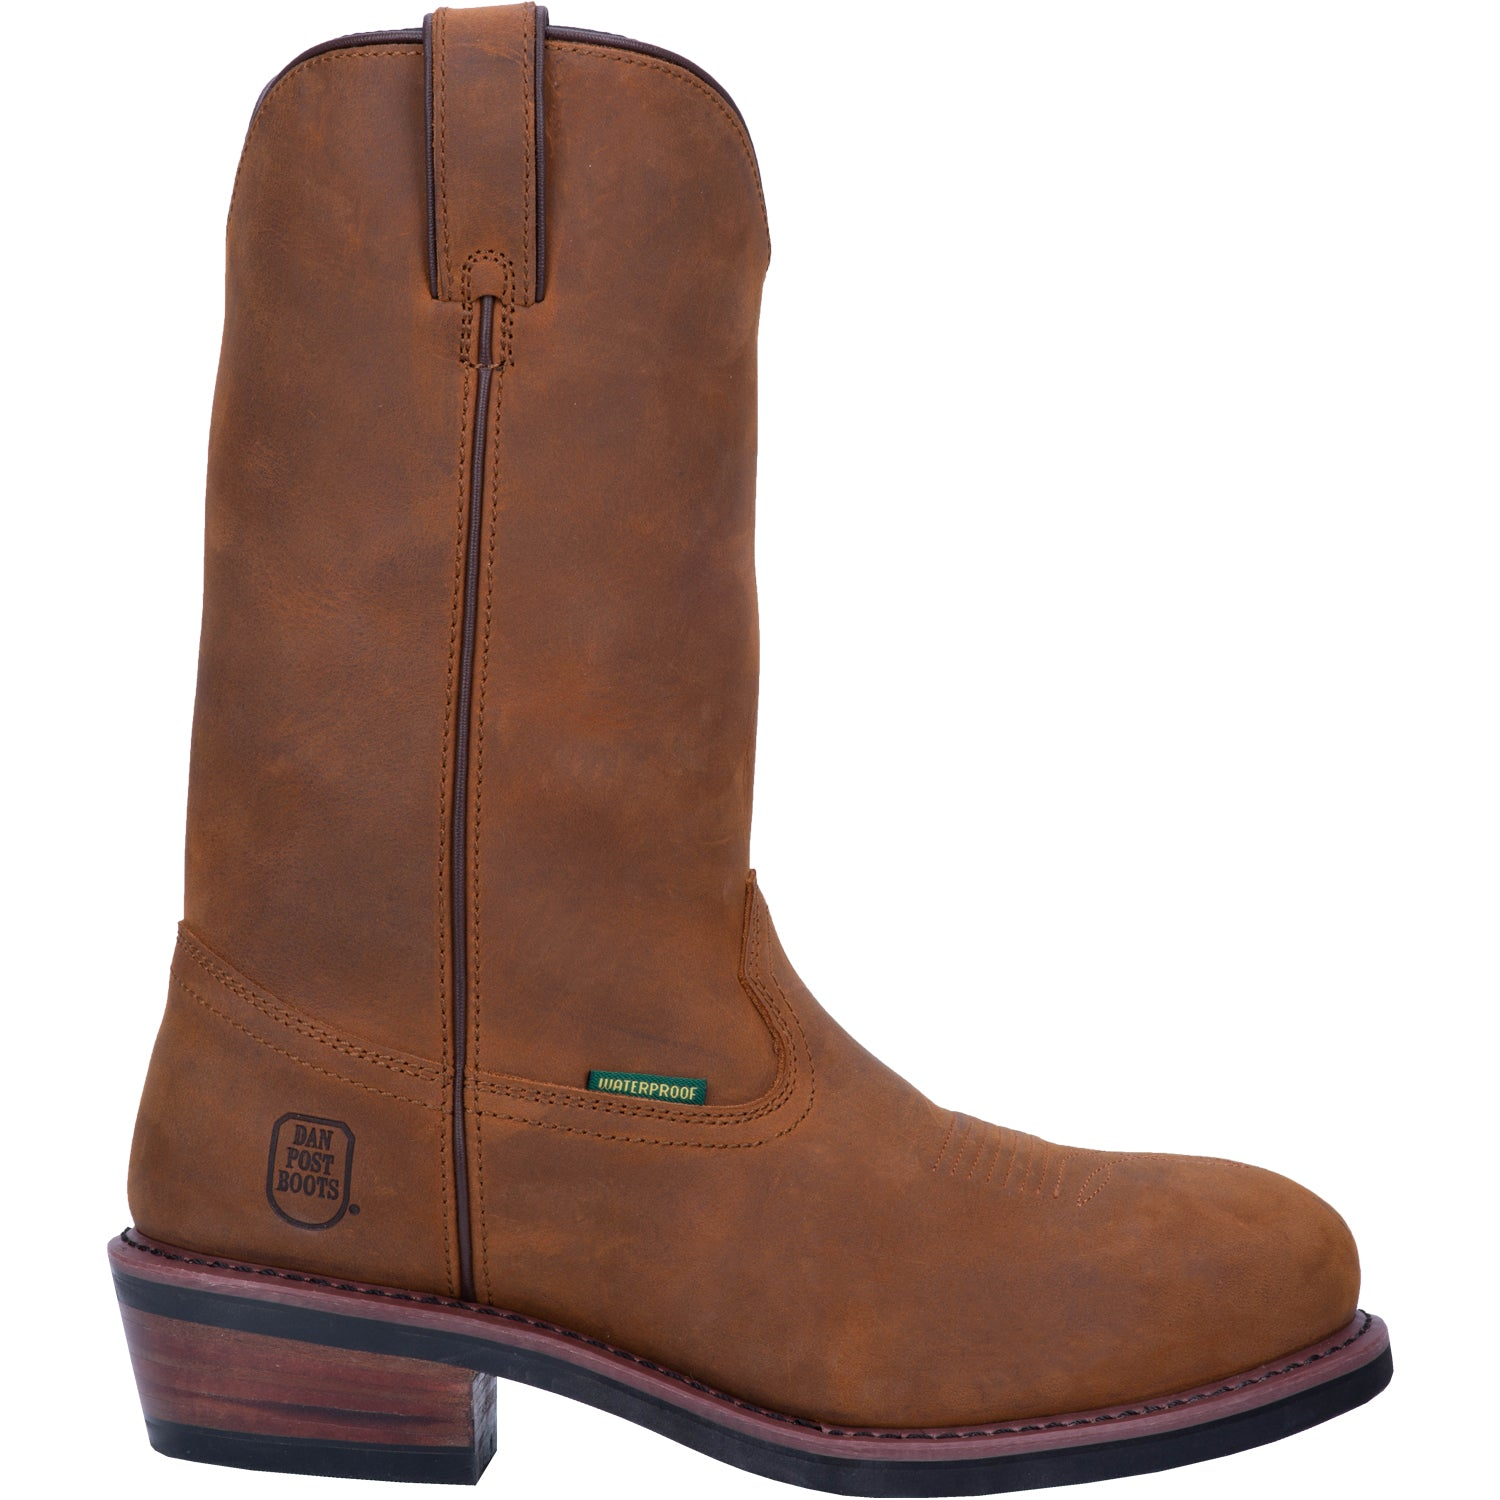 ALBUQUERQUE WATERPROOF LEATHER BOOT 15521805074474